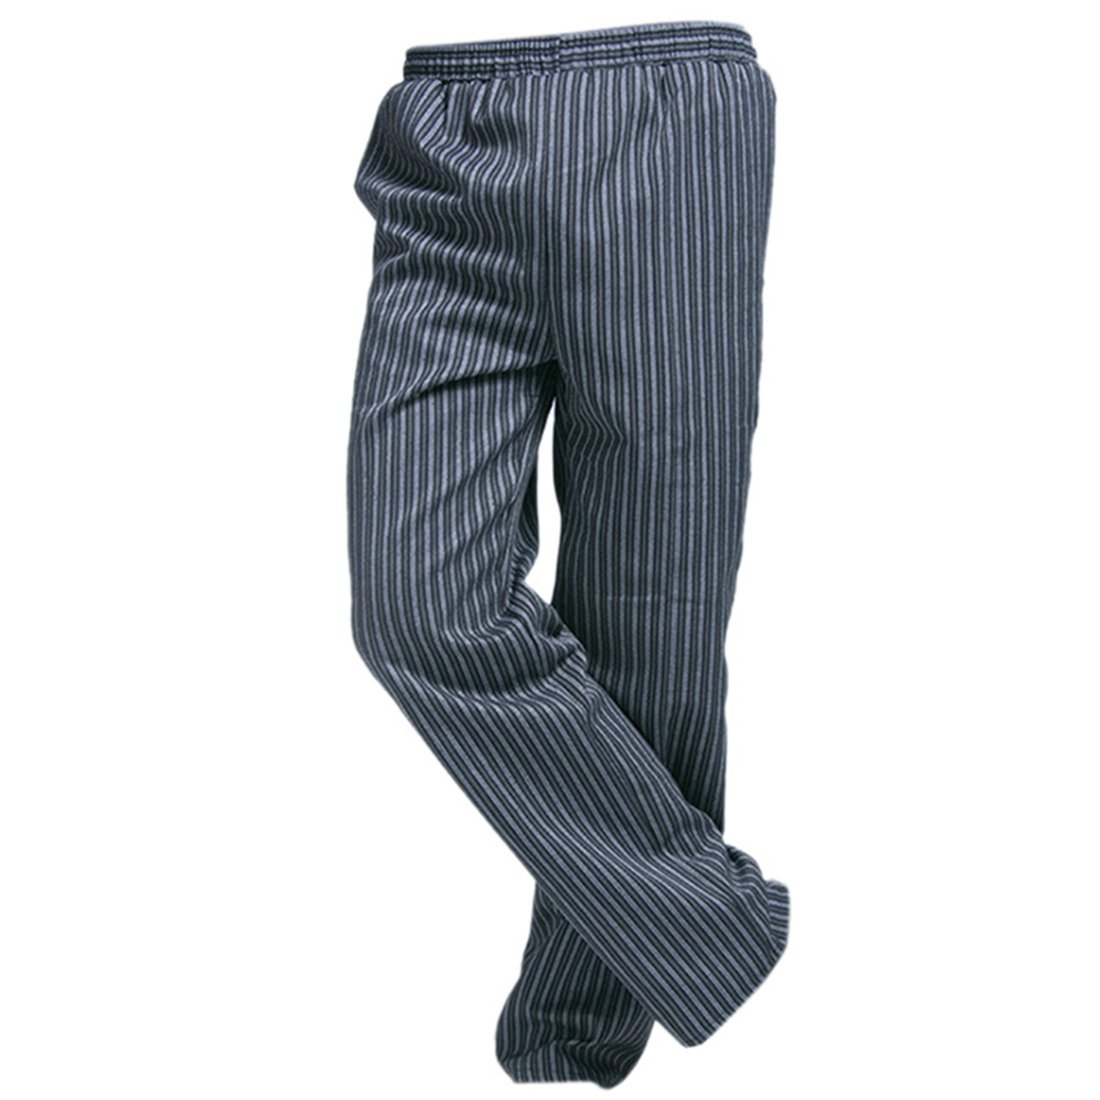 Freahap Baggy Chef Pants Stripe for Men Women Hengfey UC0009/HFCA